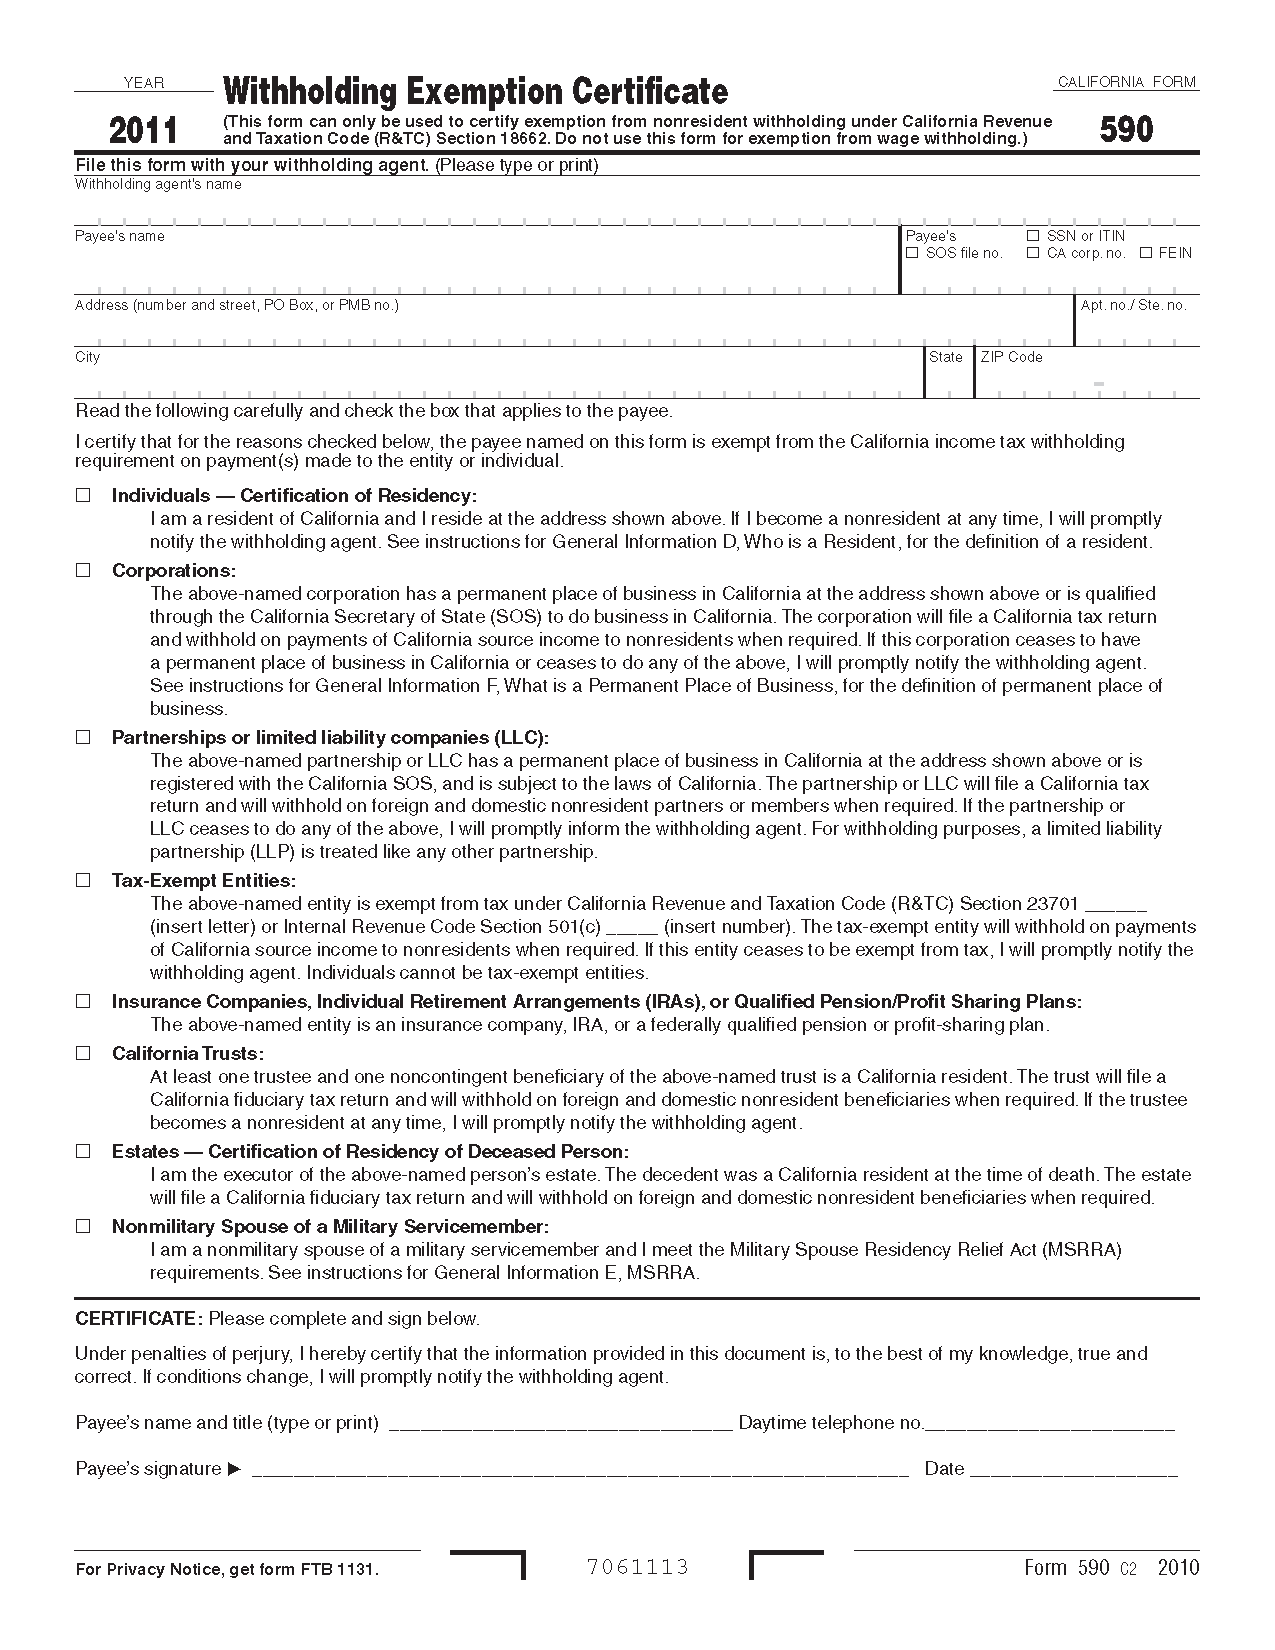 California Certificate Worksheet